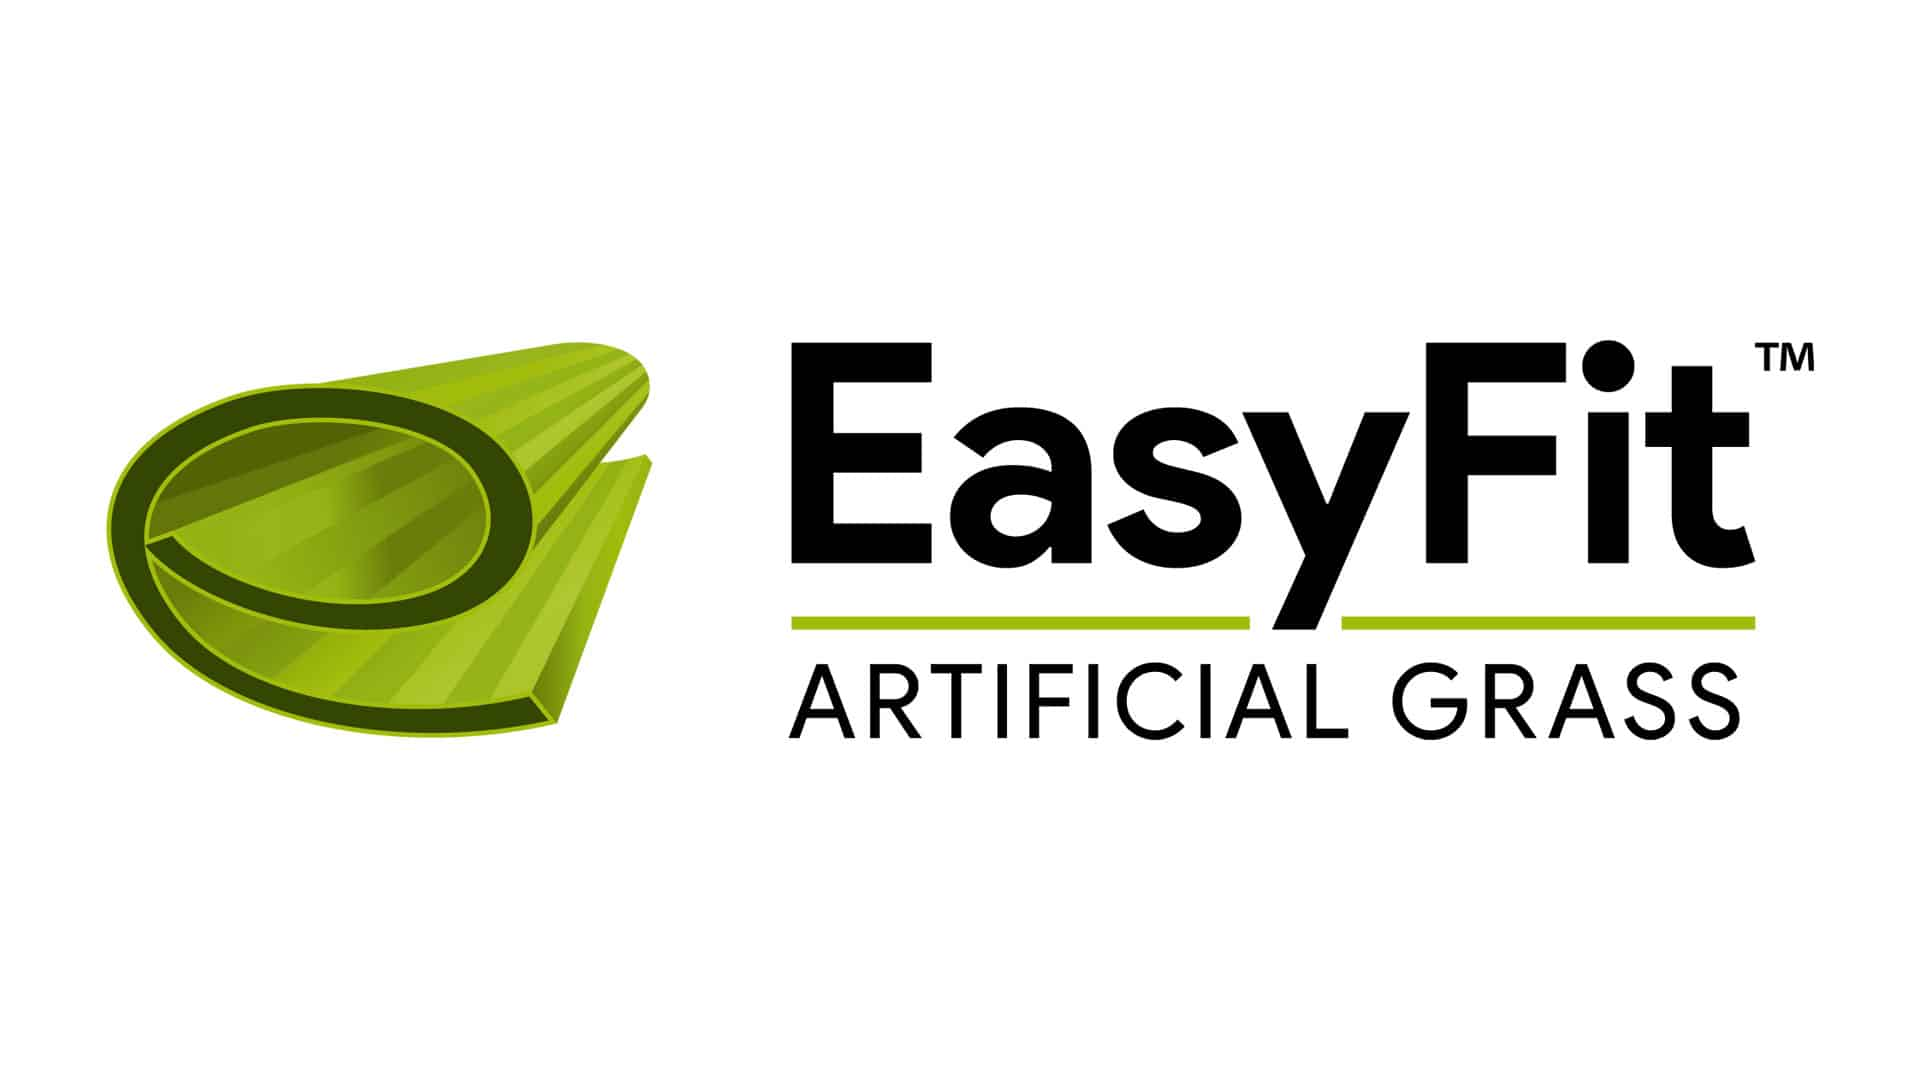 EasyFit Artificial Grass Image 1